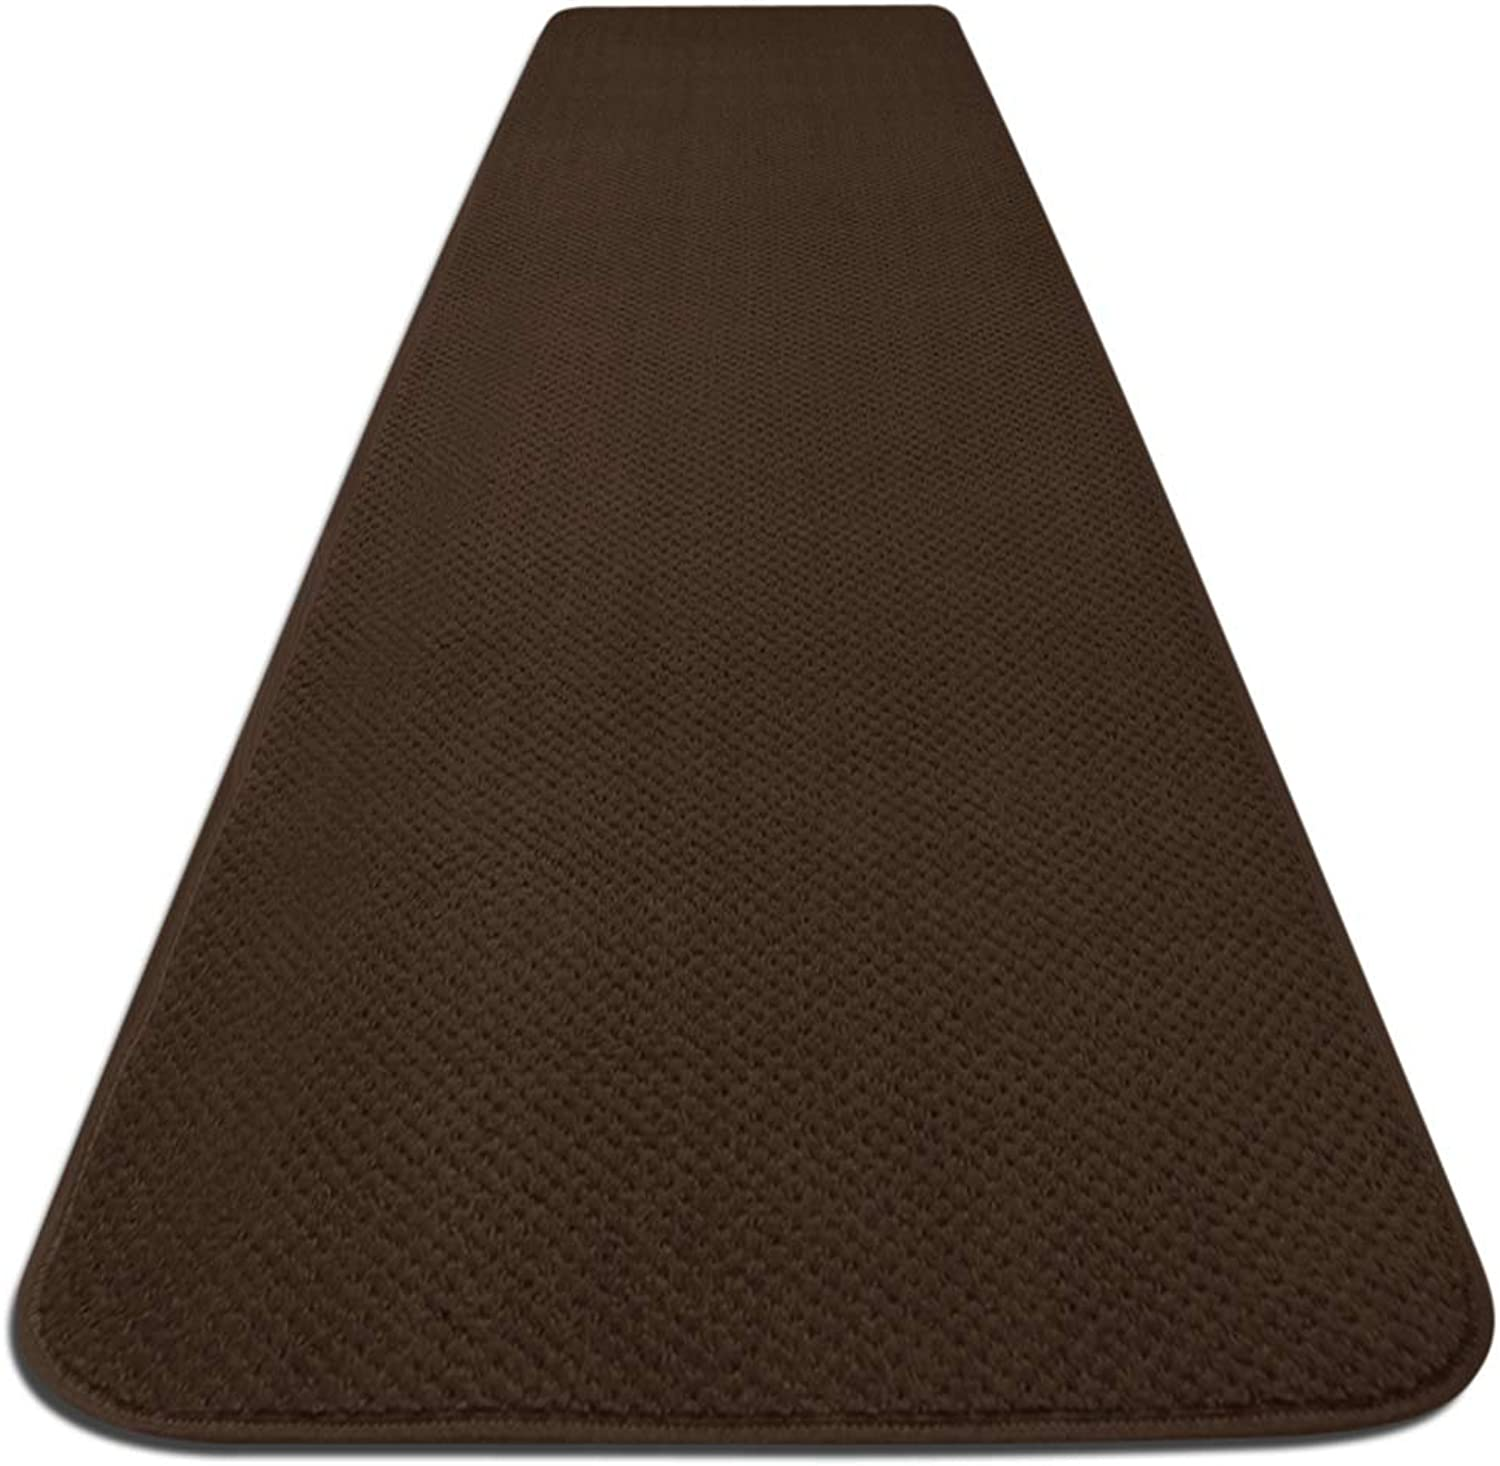 House, Home and More Skid-resistant Carpet Runner - Chocolate Brown - 10 Ft. X 27 In. - Many Other Sizes to Choose From